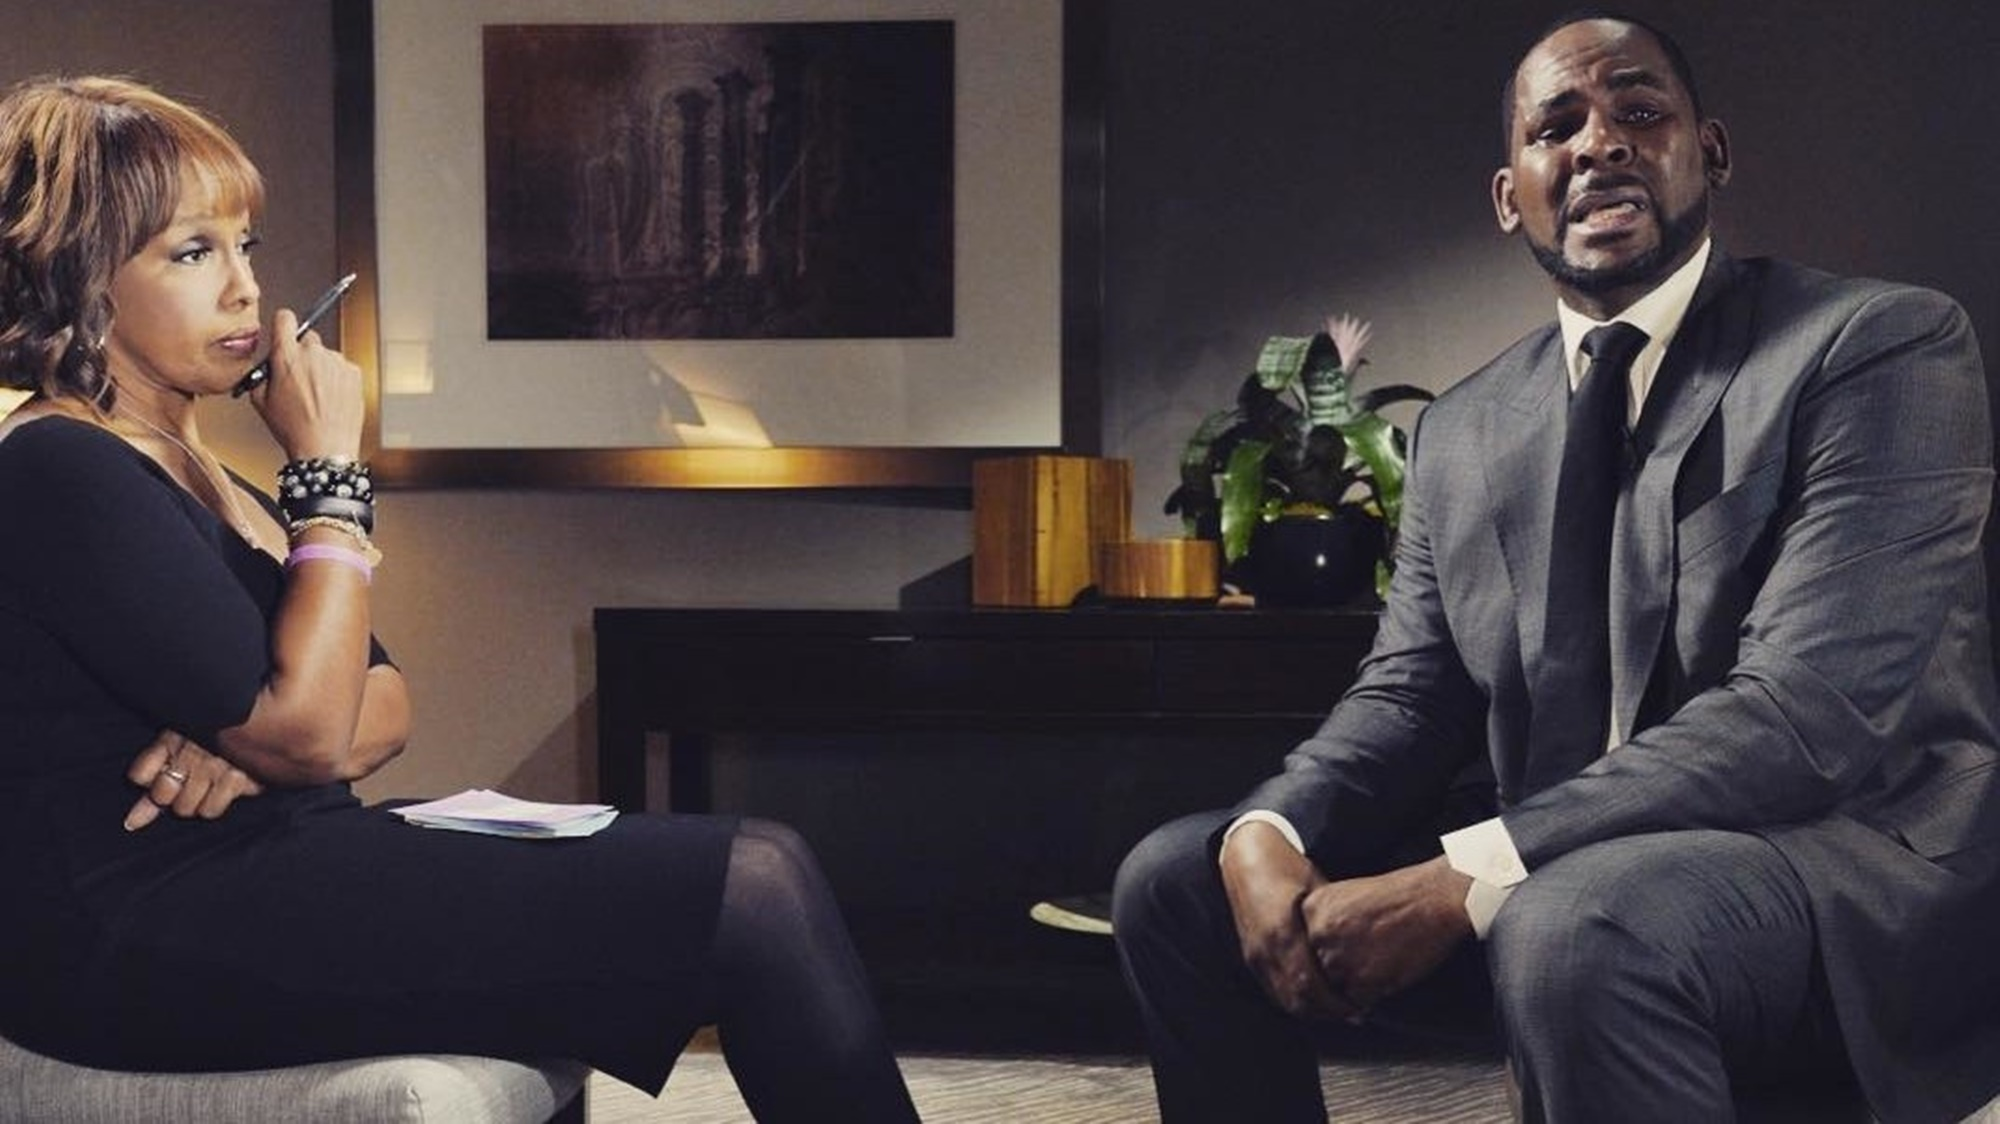 r-kelly-wants-to-do-another-interview-with-gayle-king-is-very-happy-about-the-first-sit-down-with-cbs-this-morning-host